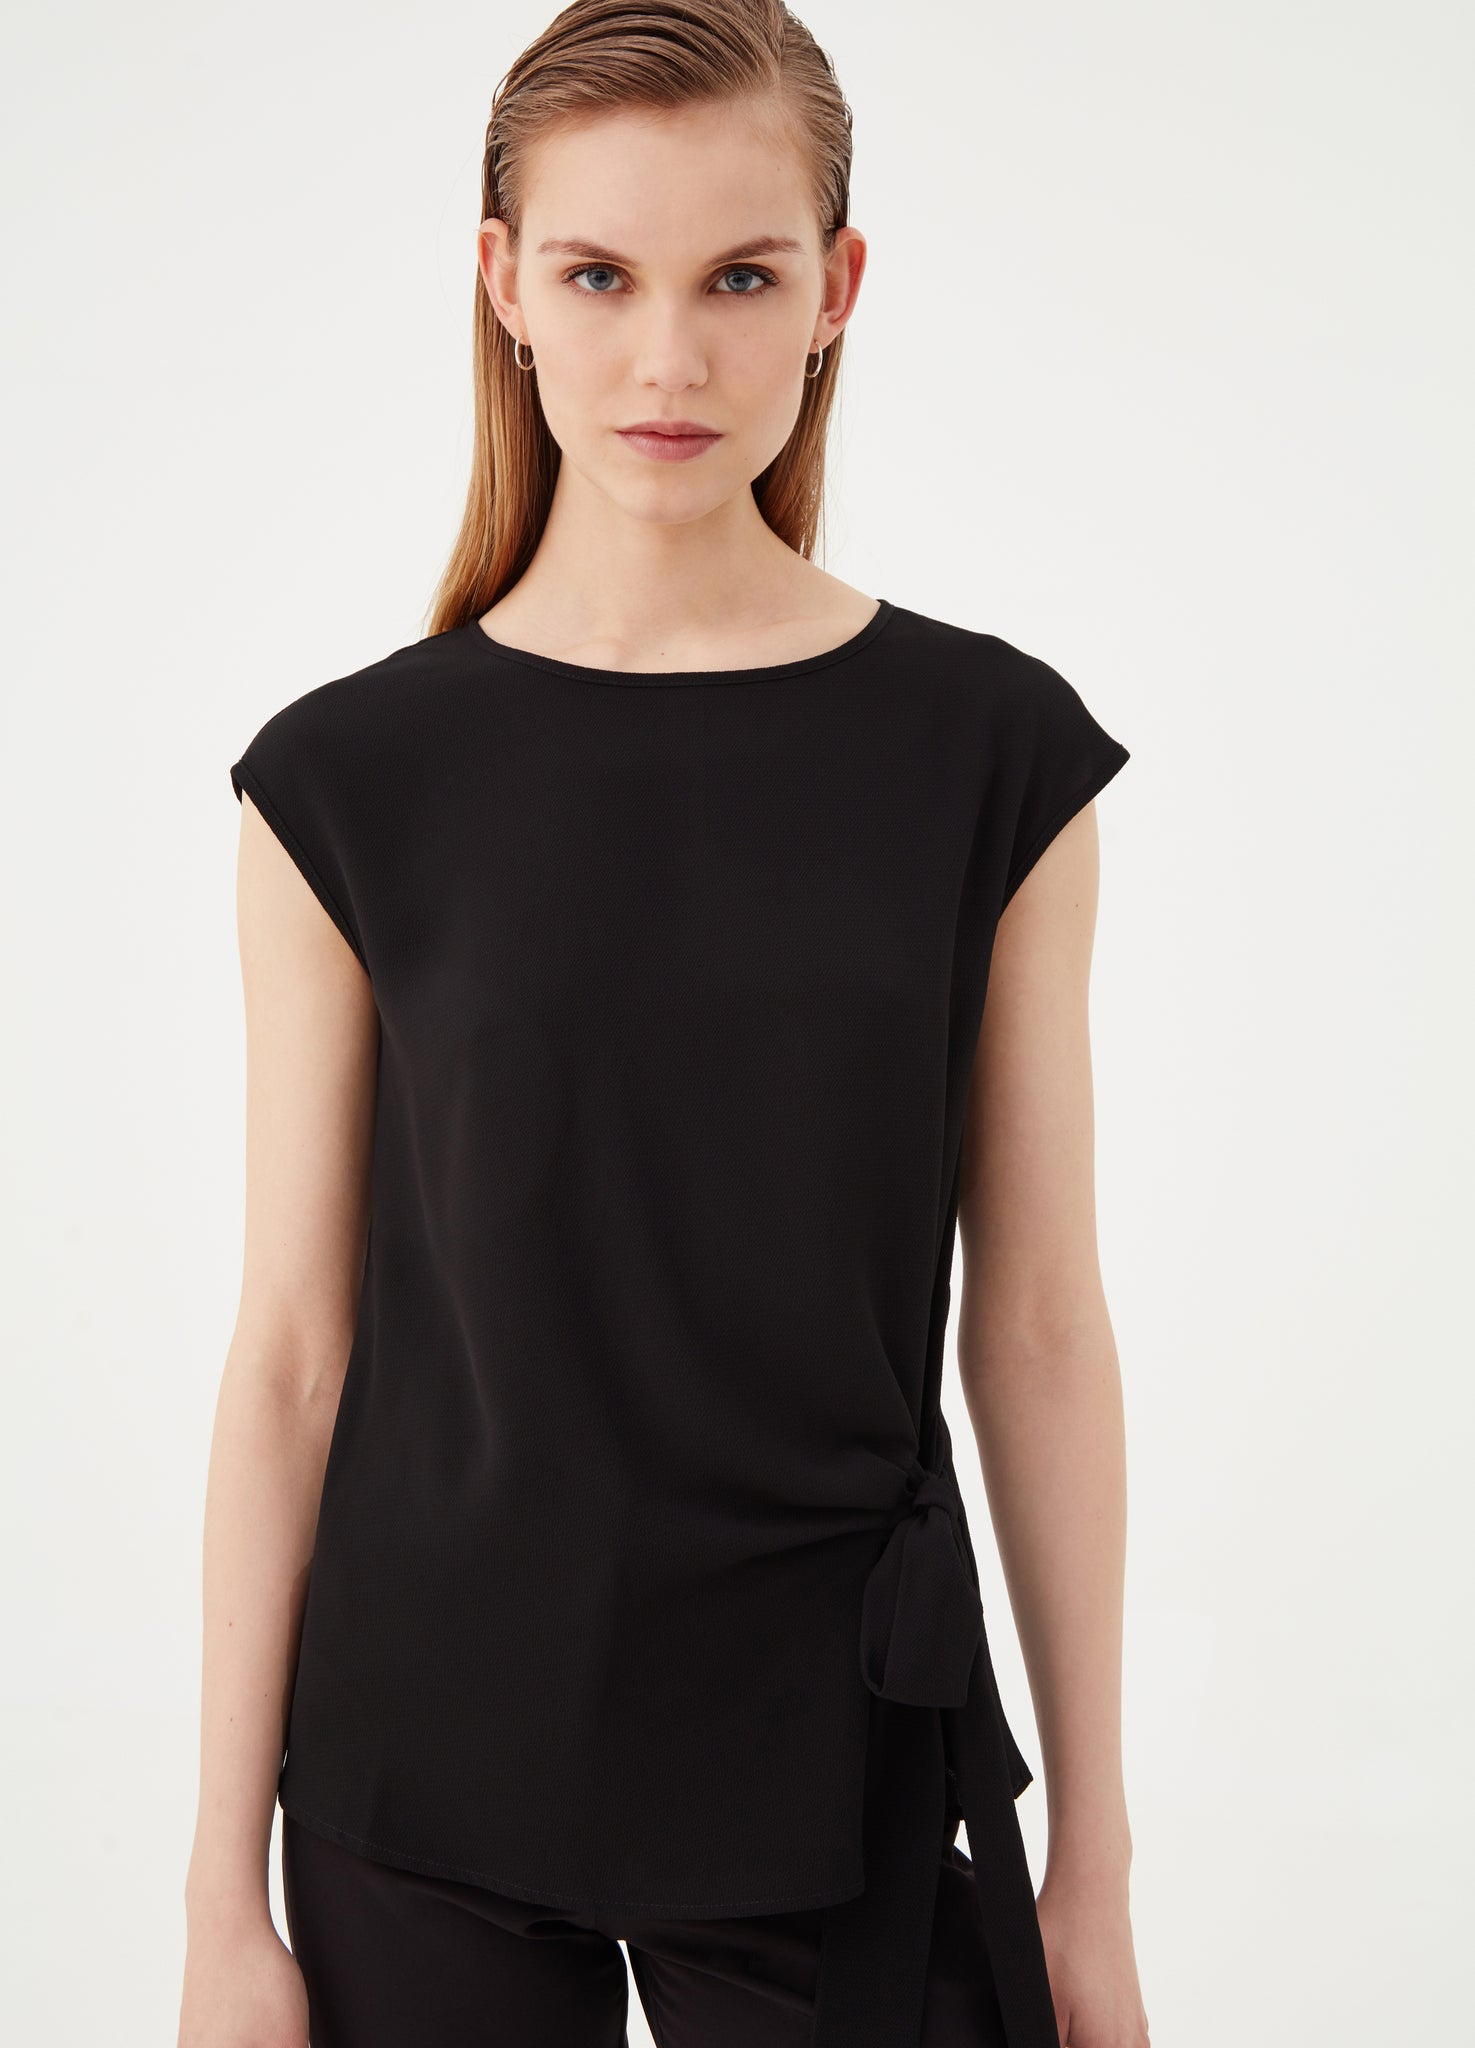 Futuristic Formal Side Fastening Black Blouse